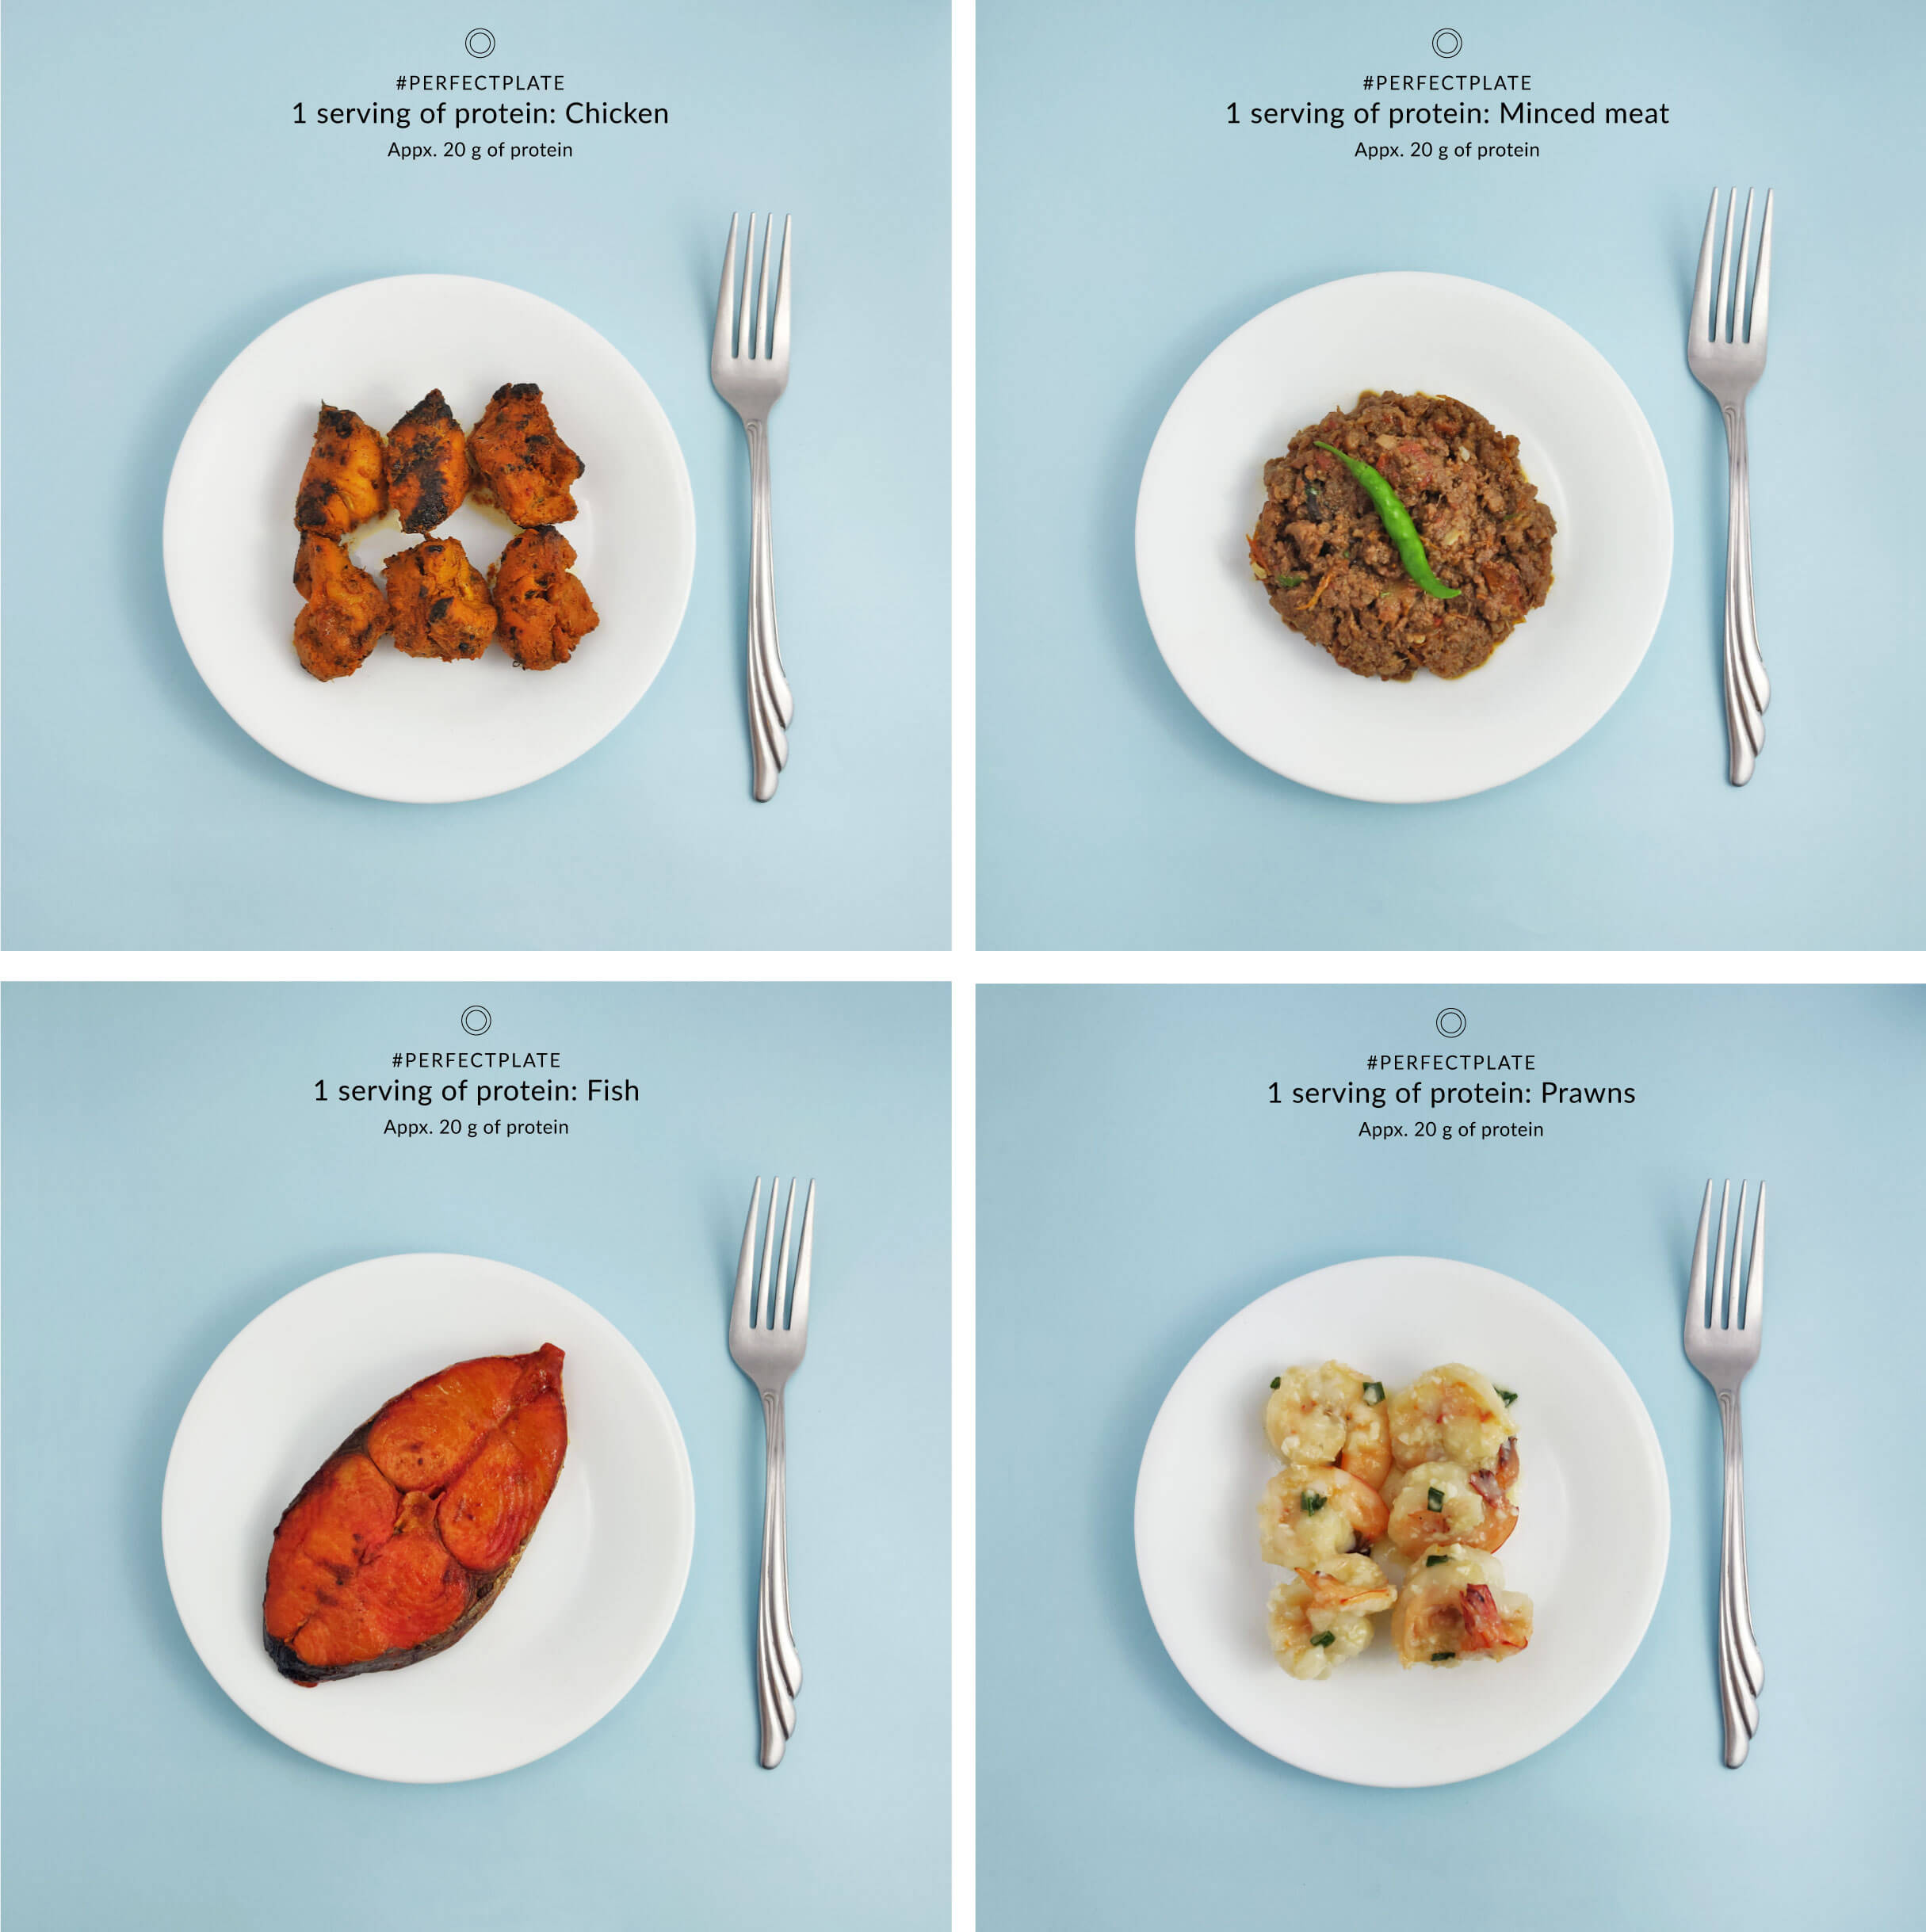 Non vegetarian food portions